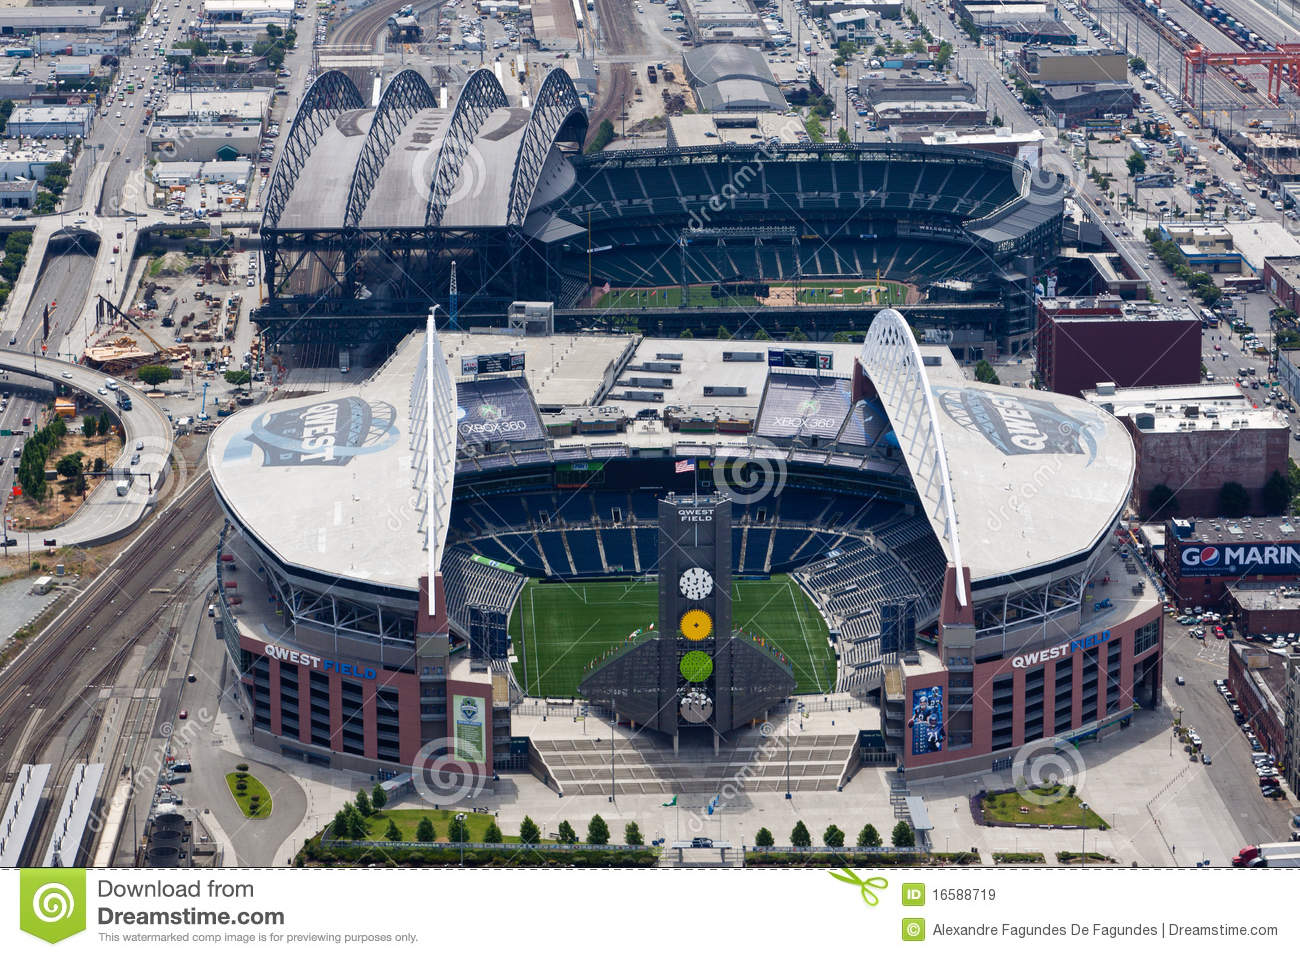 QWEST and Safeco Field in Seattle